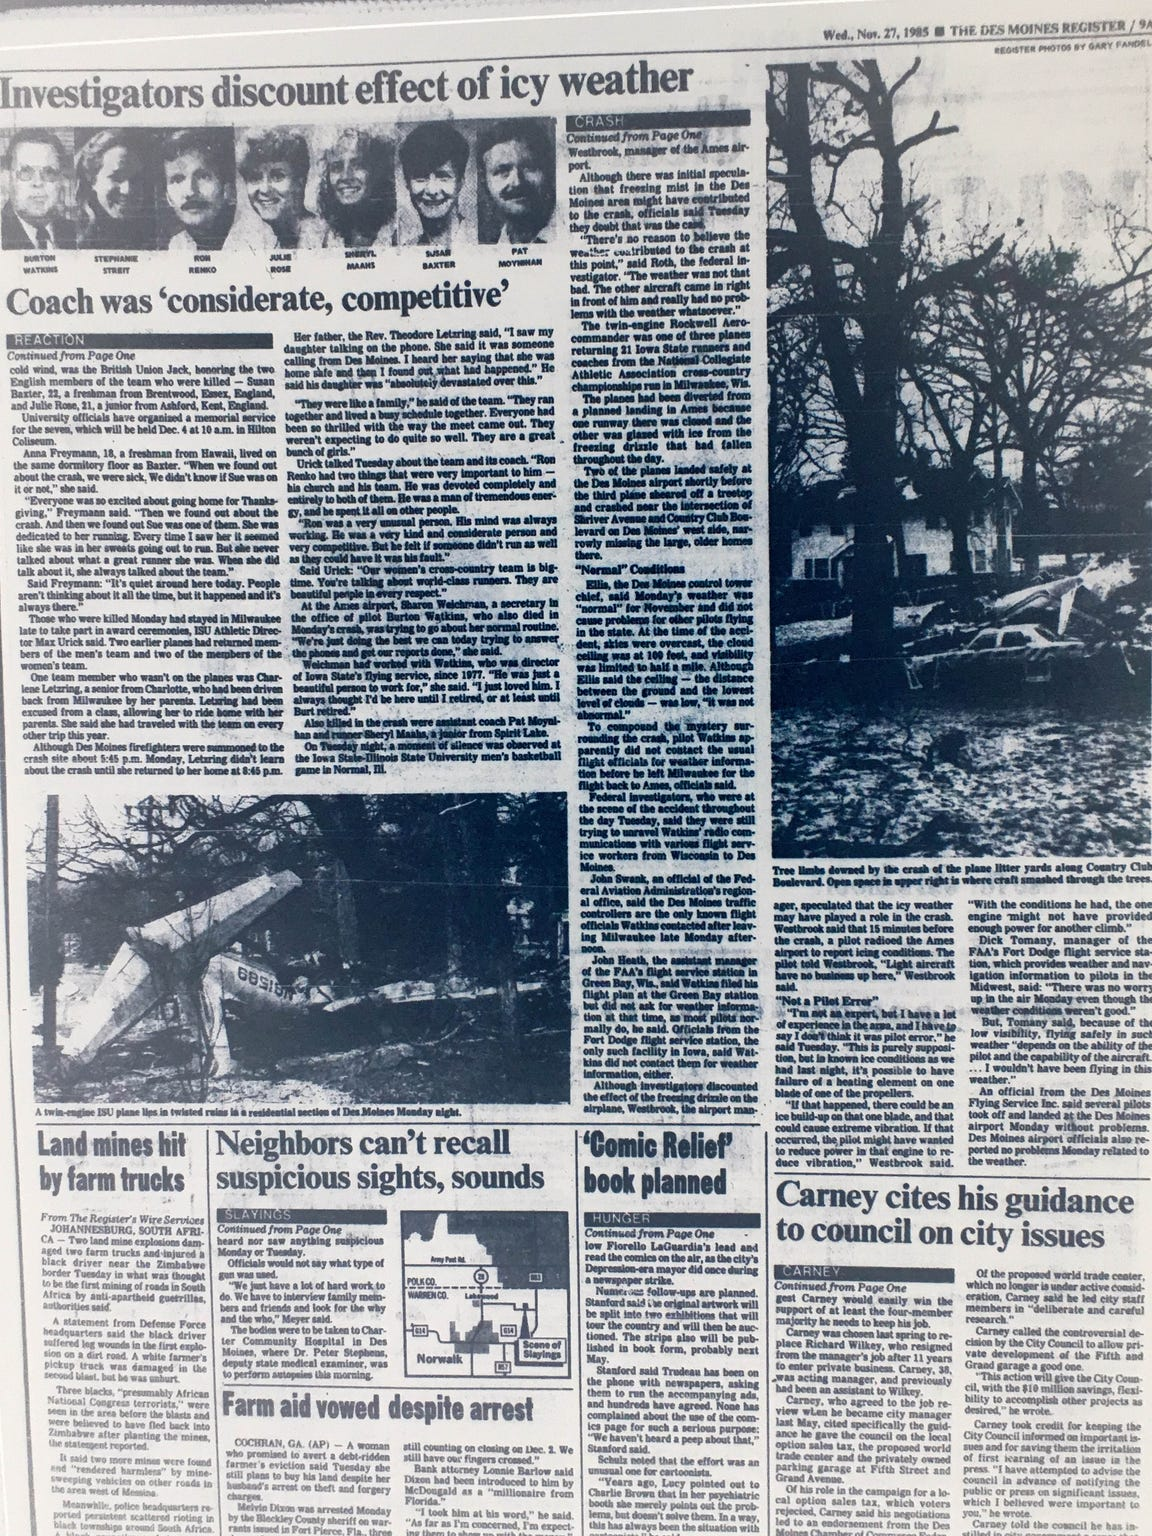 The Des Moines Register on Nov. 27, 1985, reported on the crash of a small plane carrying members of the Iowa State University women's cross country team.